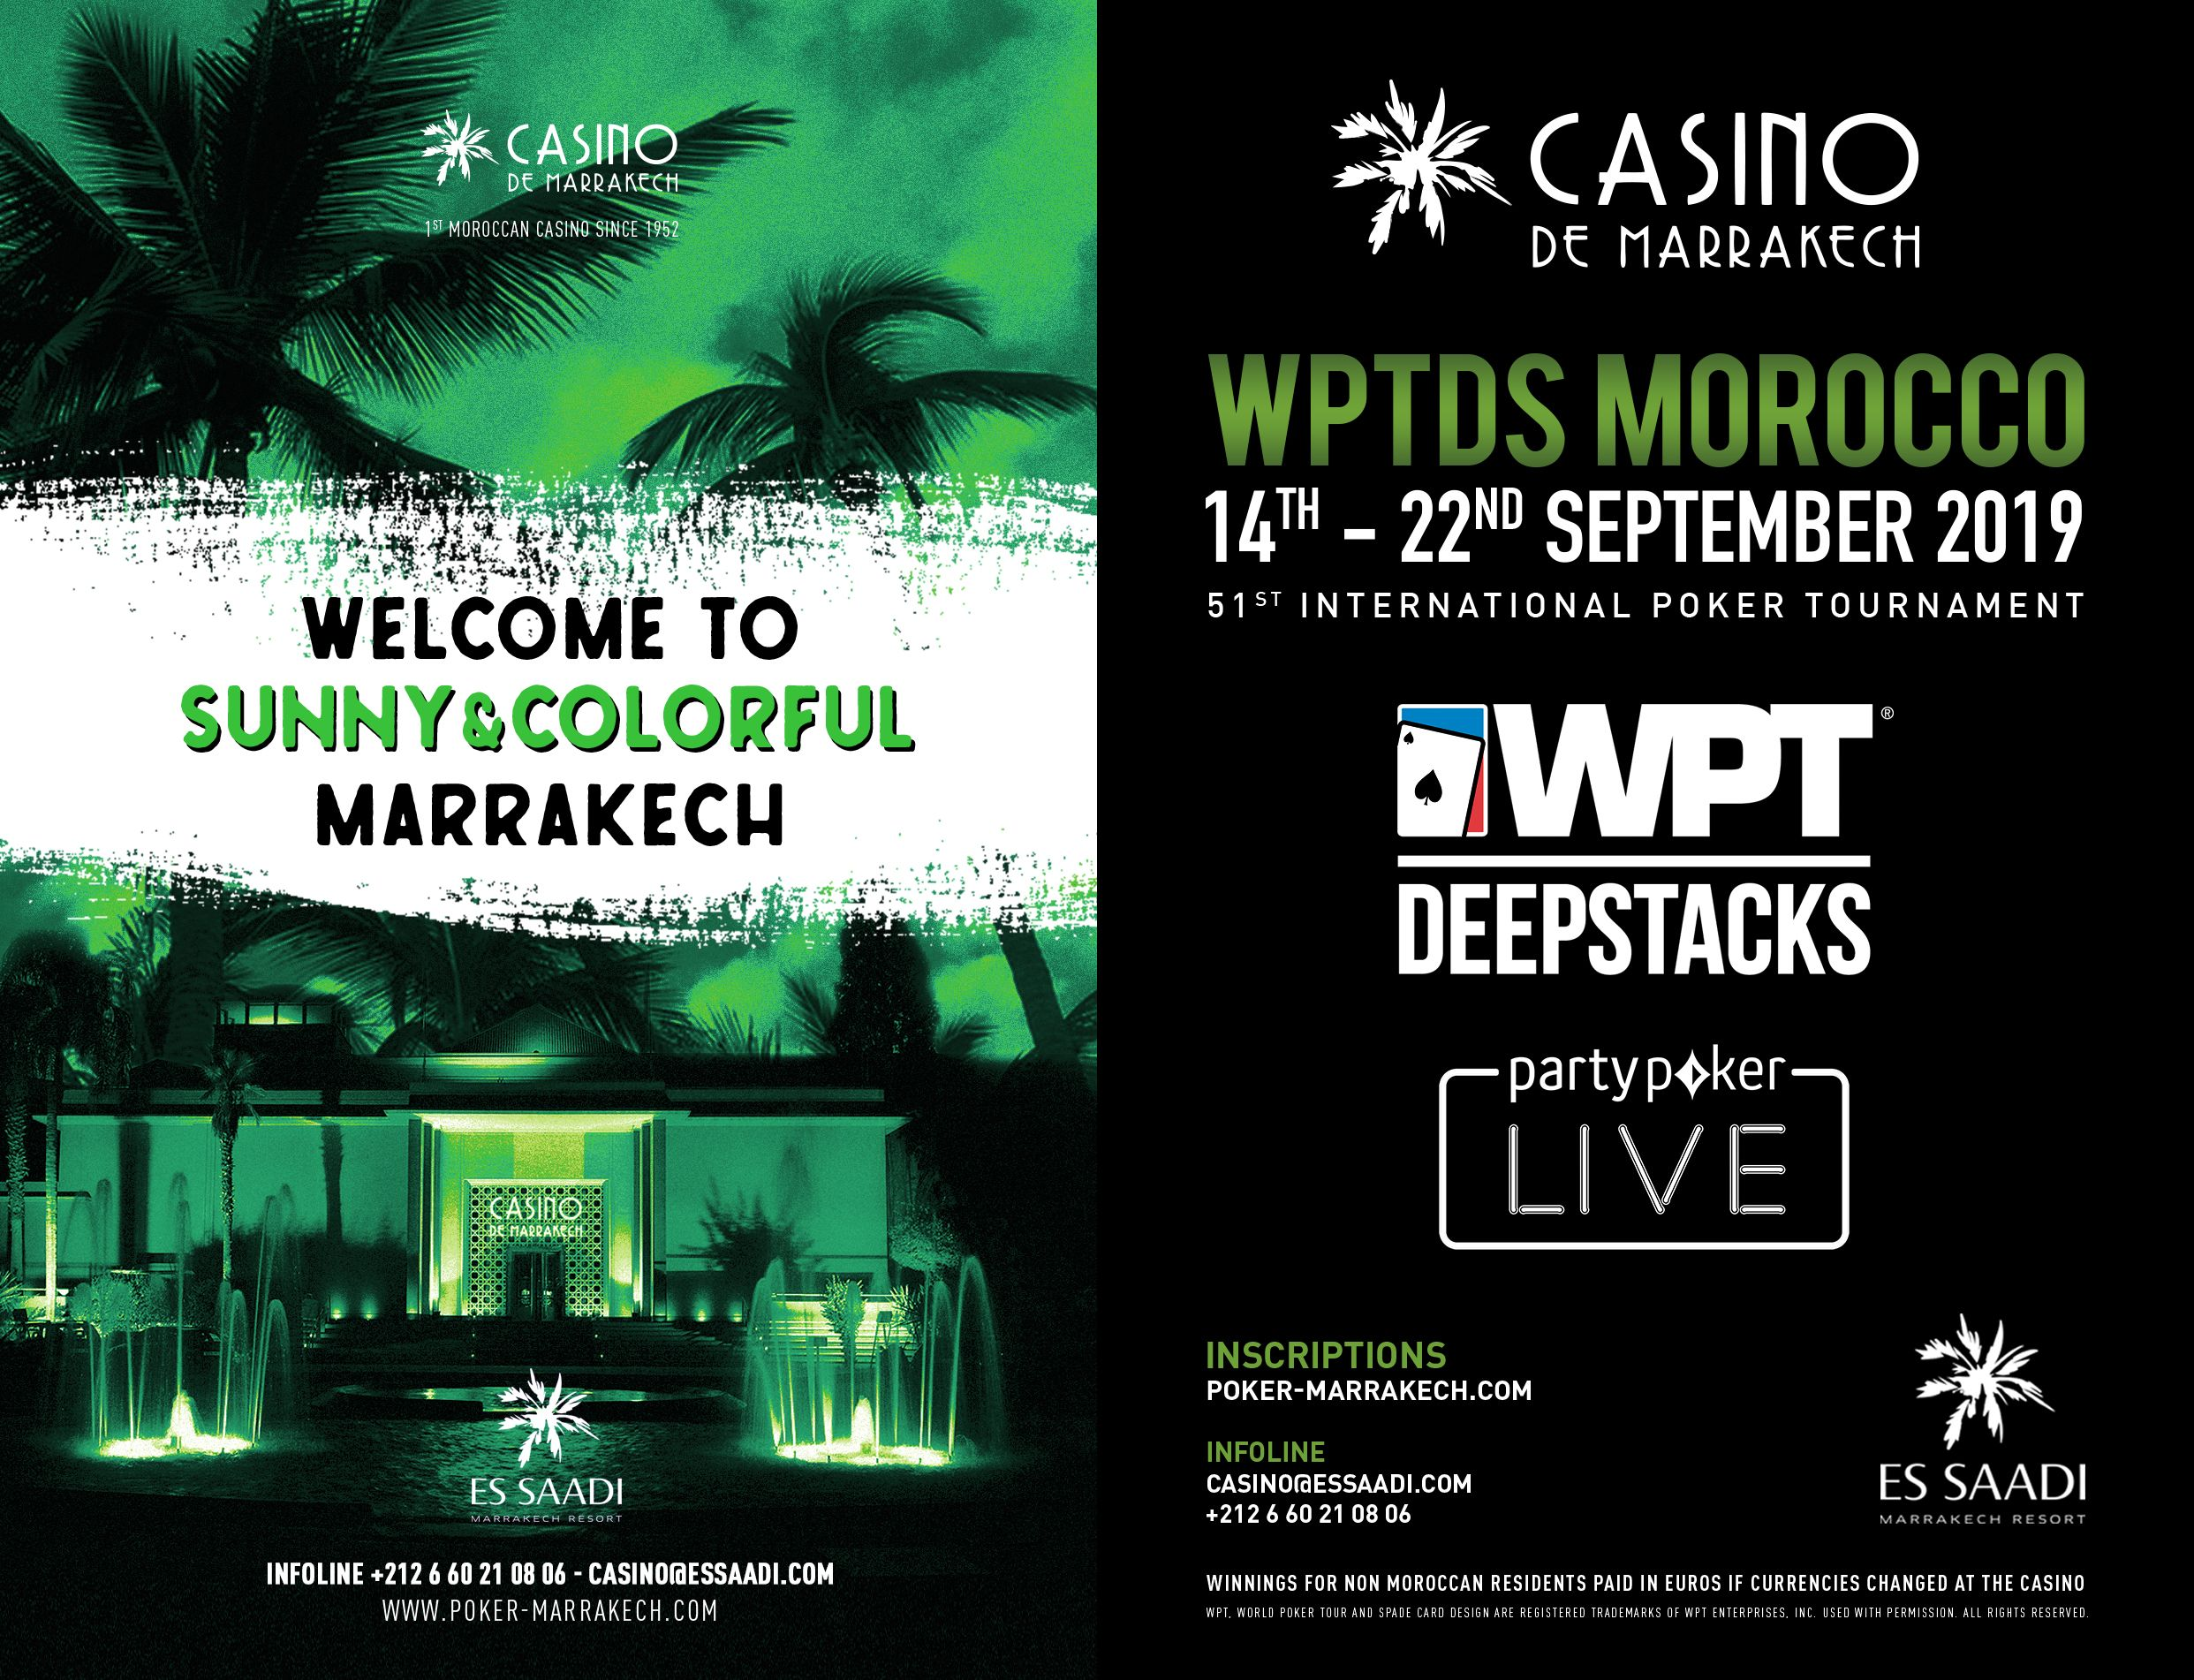 WPTDS MARRAKECH 2019 – 51ème tournoi international